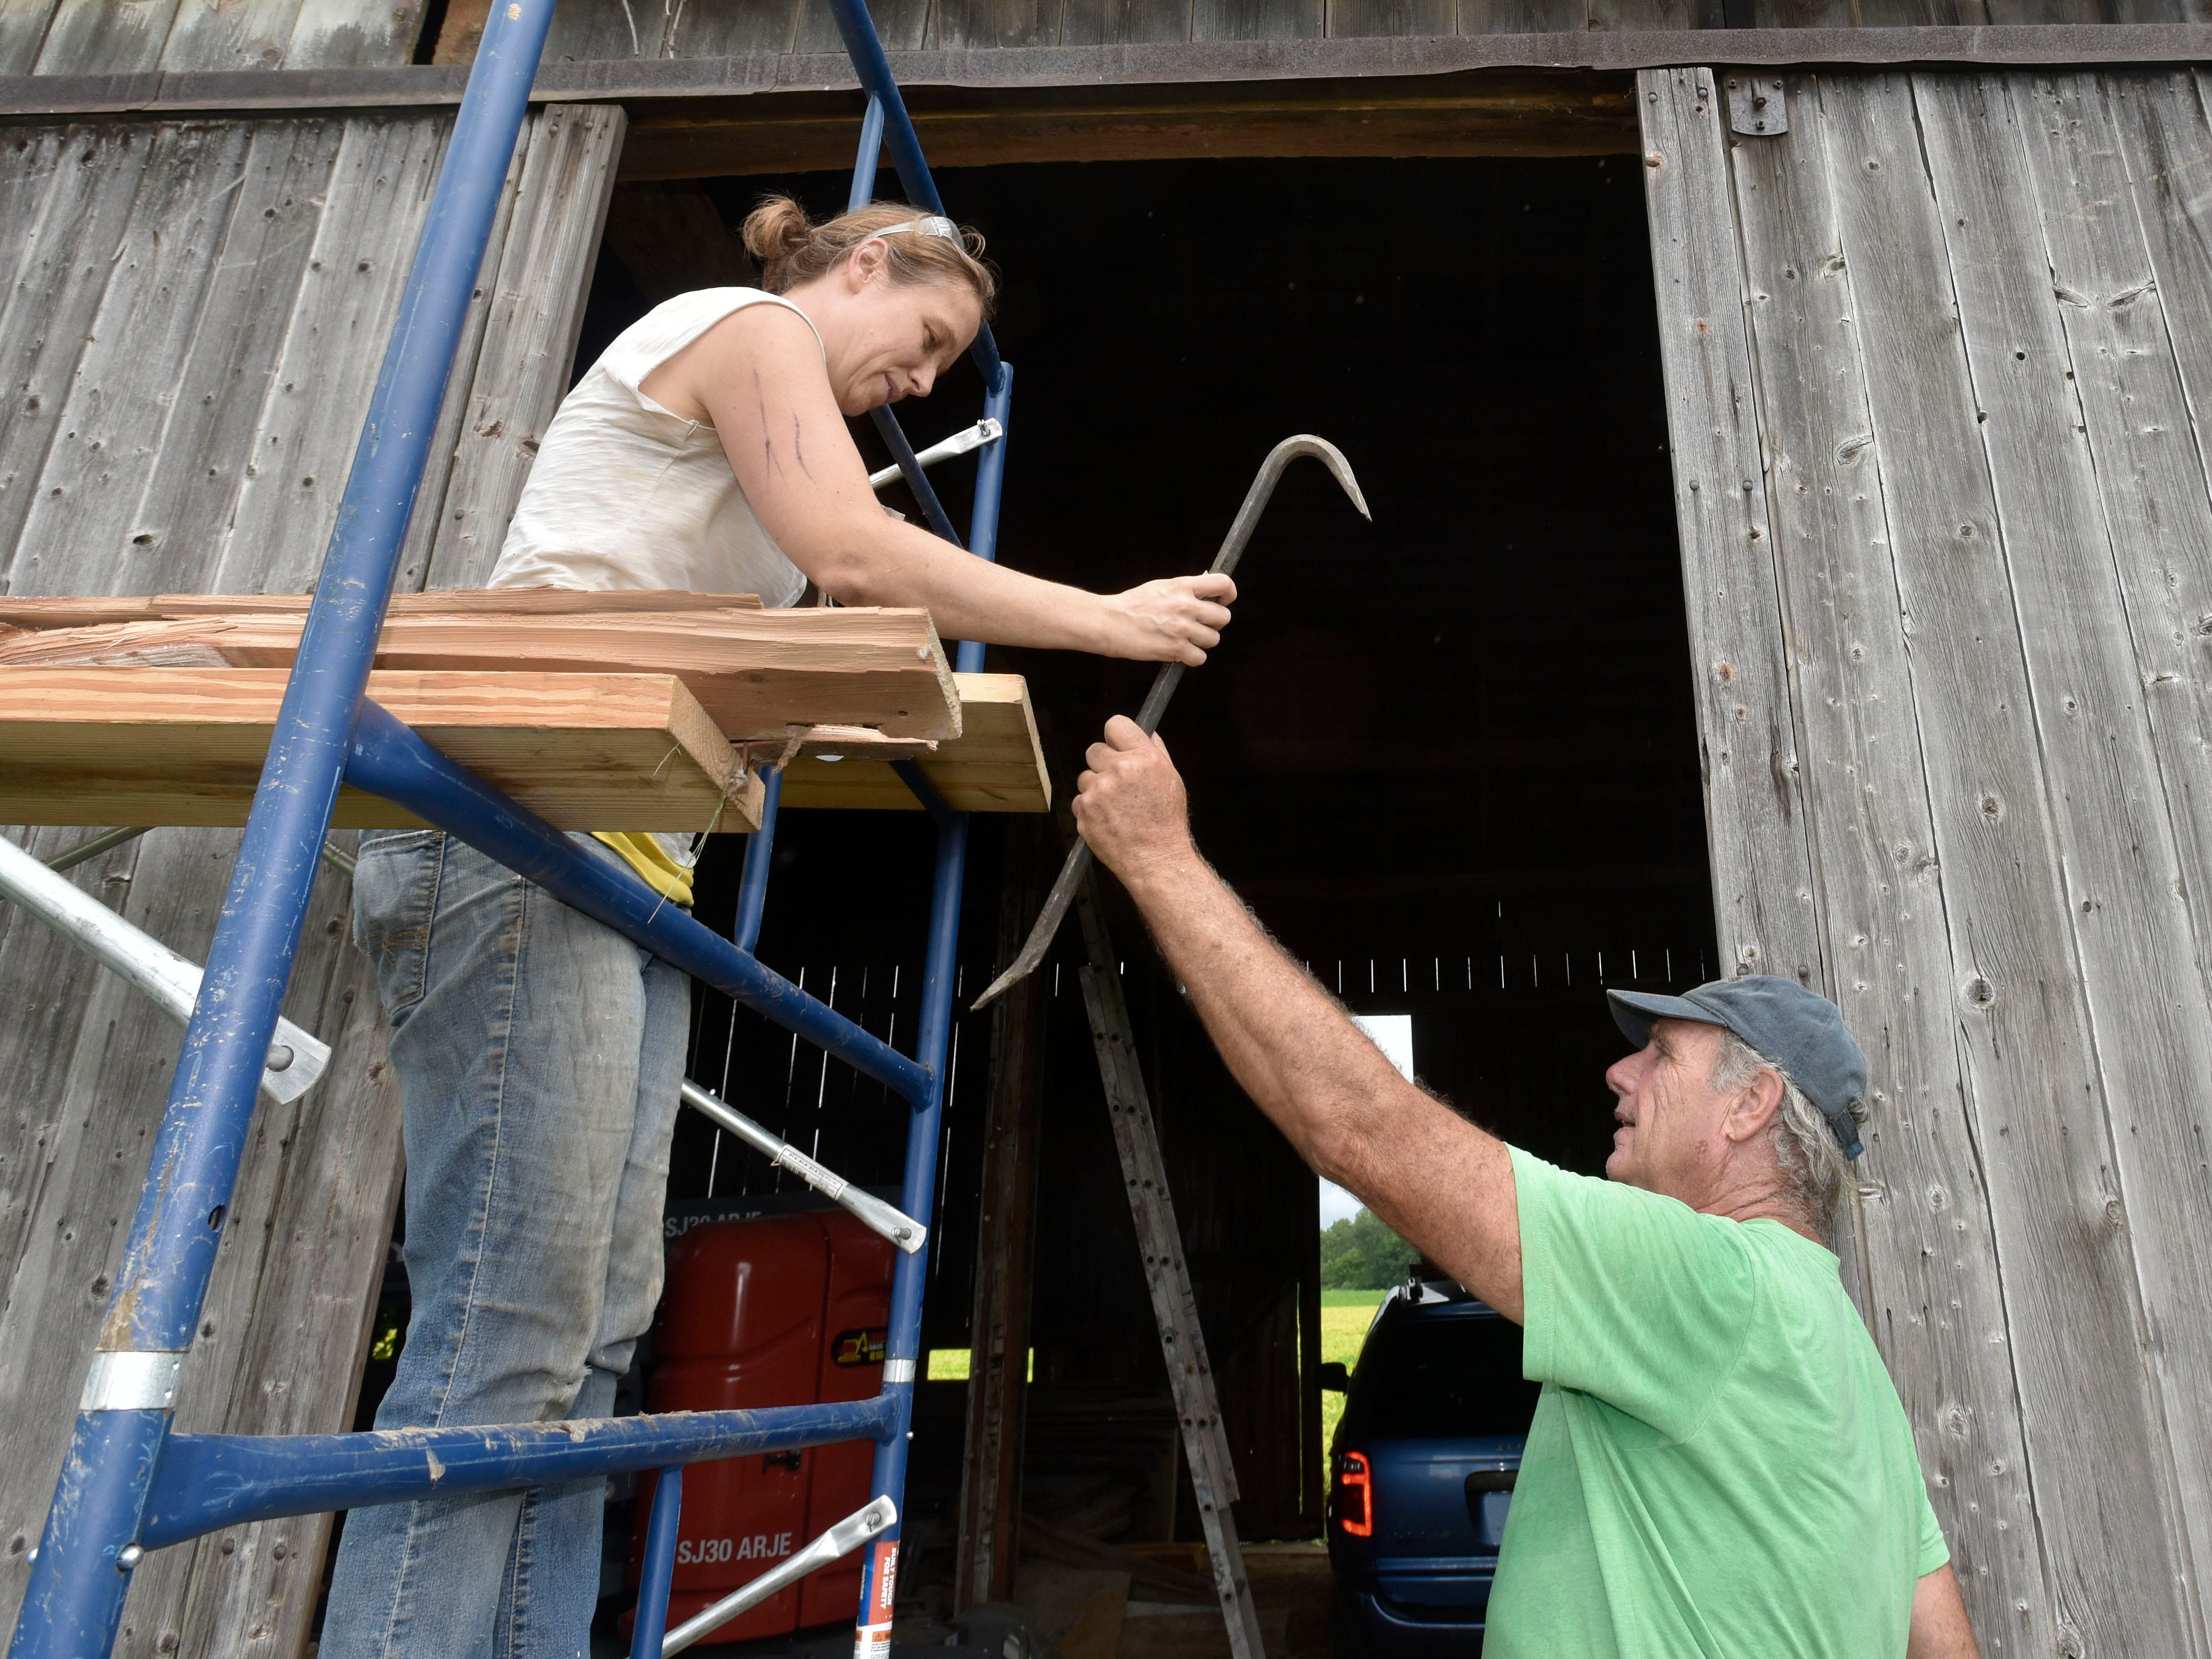 Barn artist Catie Newell of Detroit hands a crowbar to volunteer laborer Terry Boyle, 71, of Port Austin. Boyle, a retired lawyer, now owns and operates six Little Yellow Cottages in Port Austin.